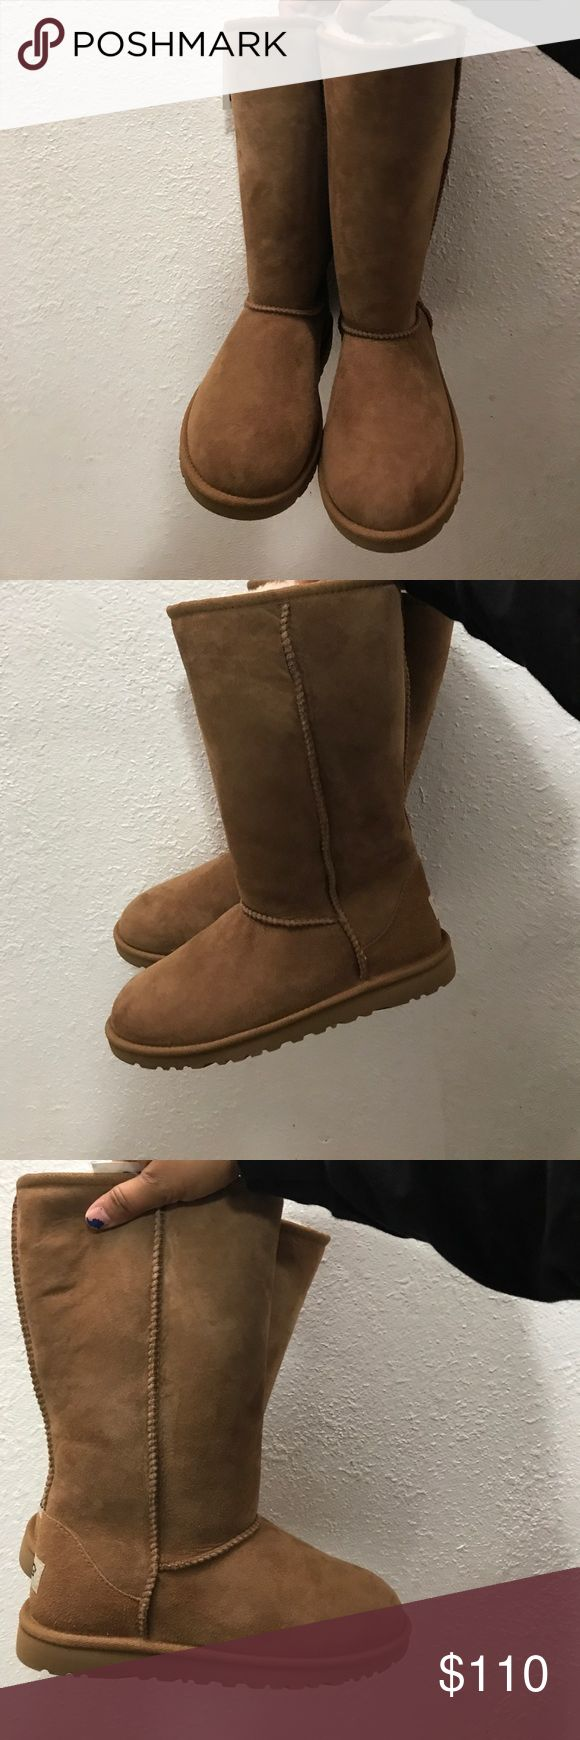 Ugh Boots Brand New Size 6 in youth 36 eu size which is equivalent to a women's size 5/6 UGG Shoes Winter & Rain Boots